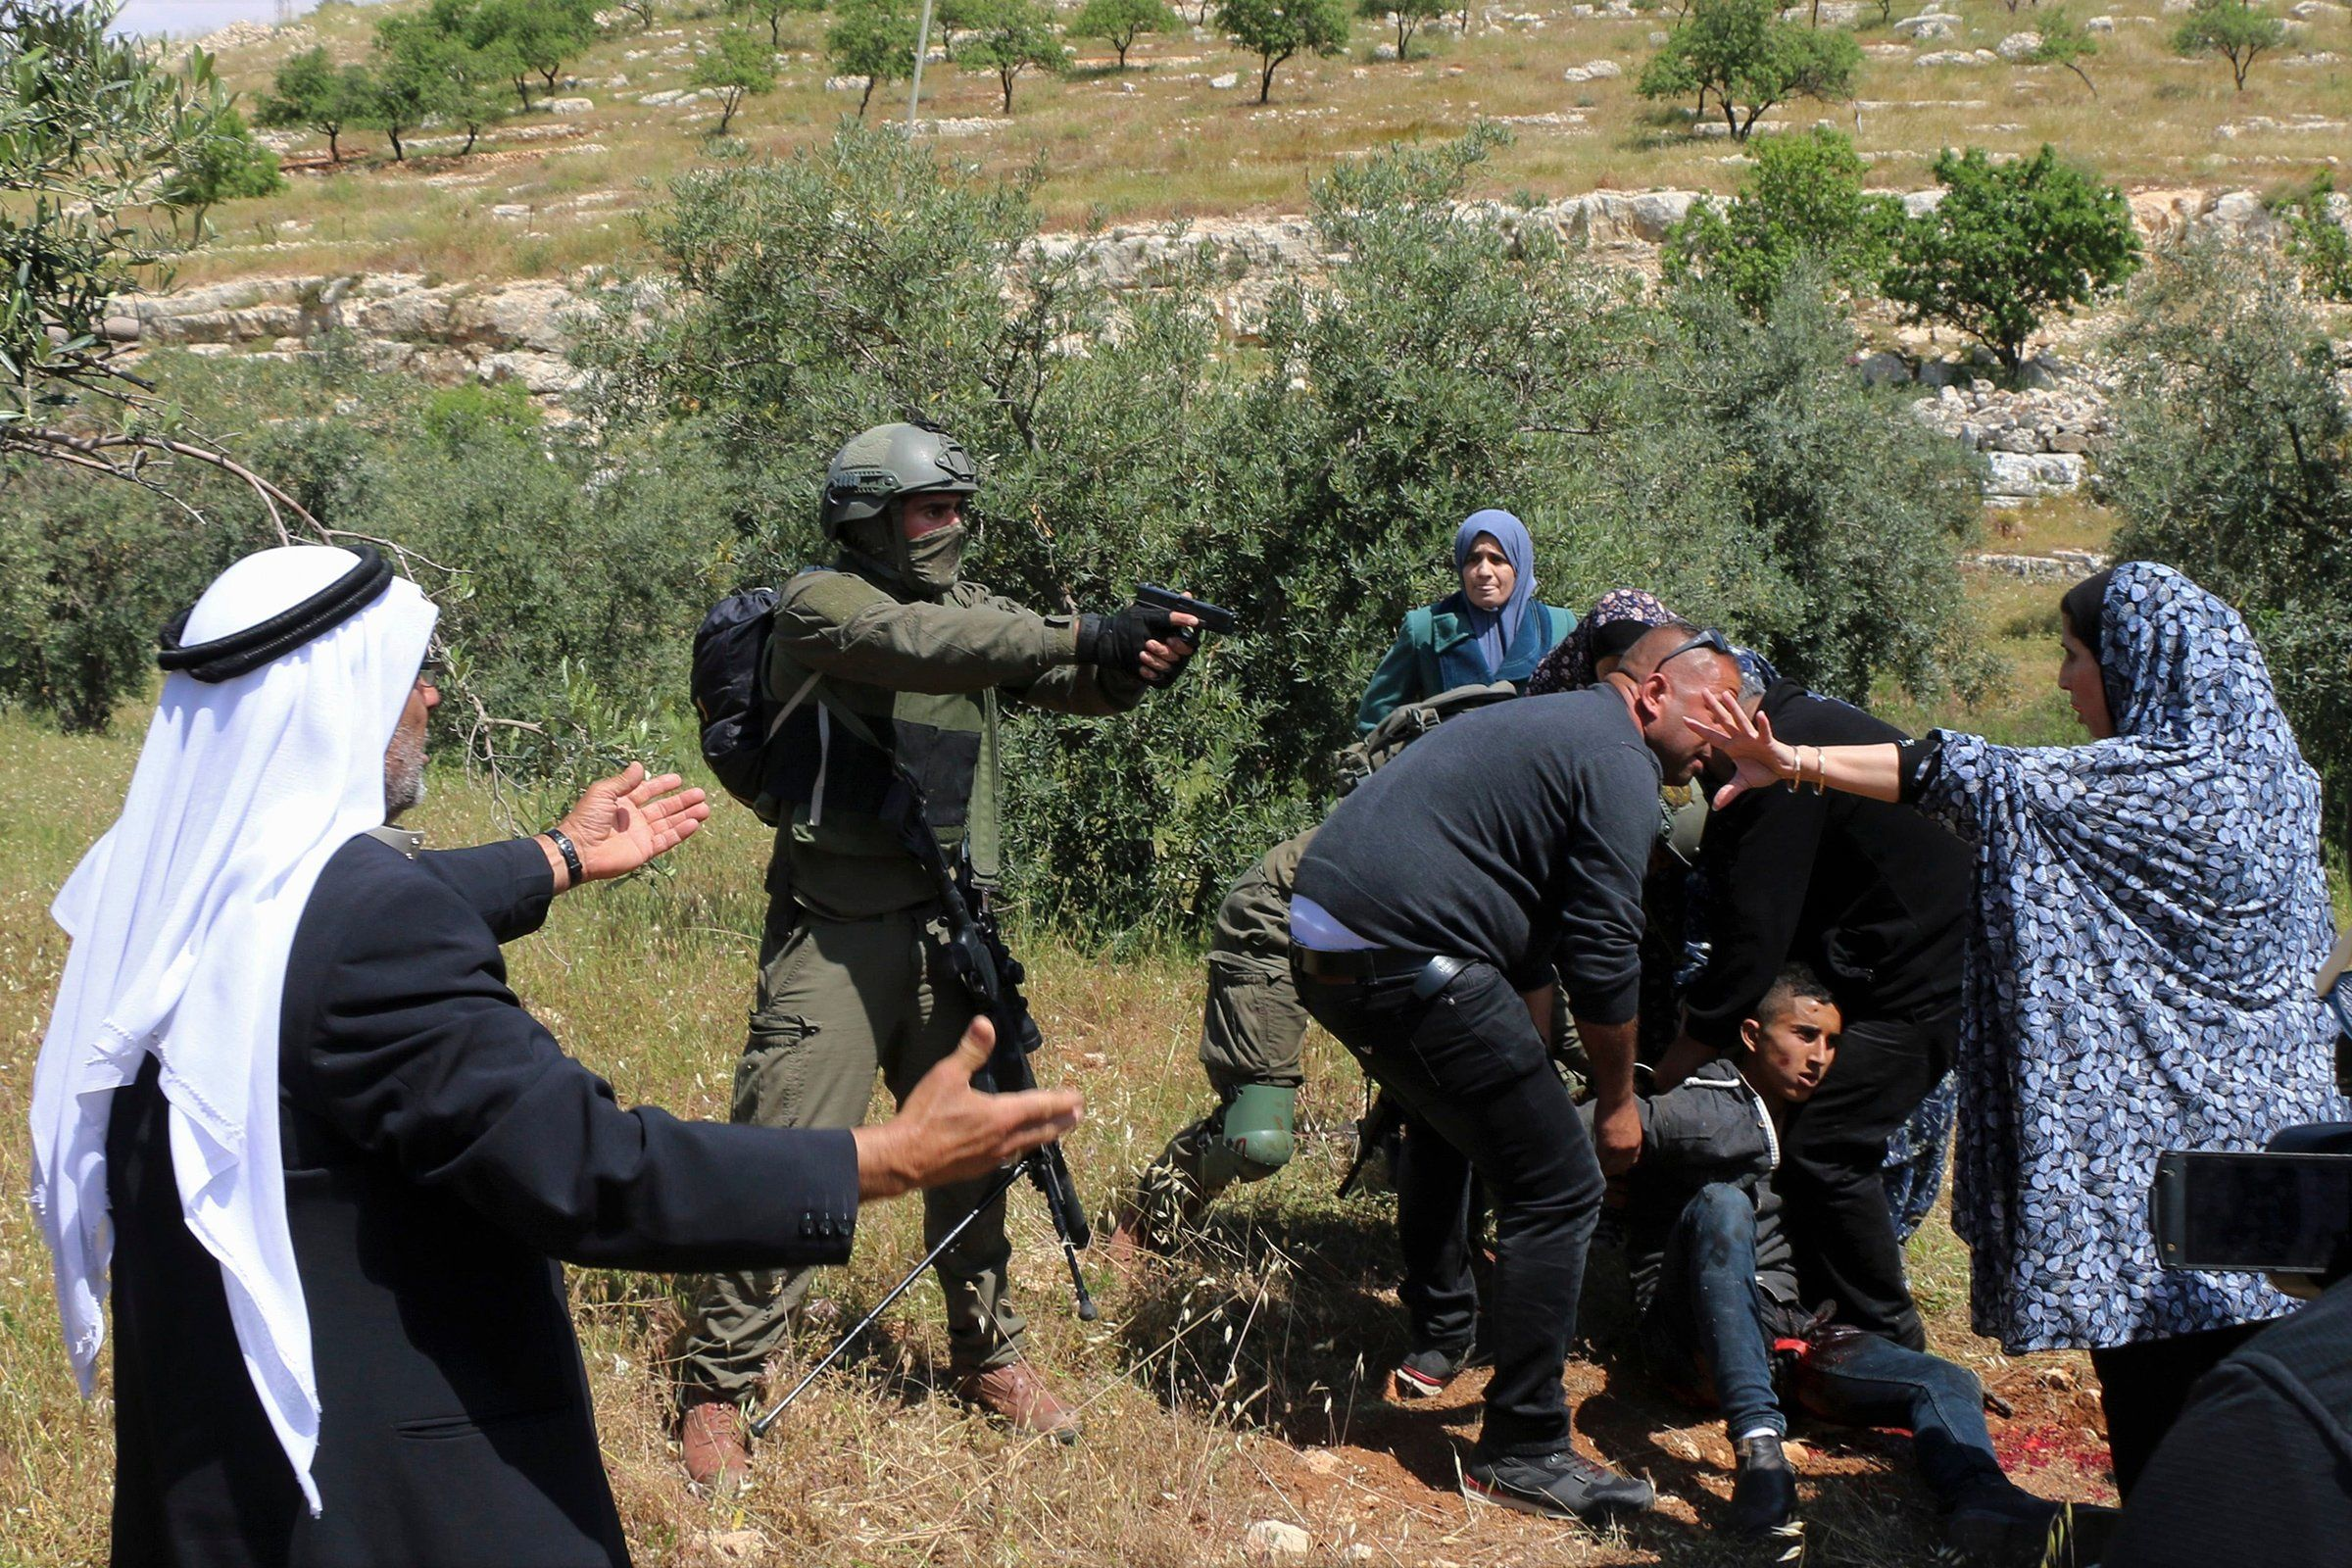 An Israeli soldier points his pistol at a group of Palestinians gathering around a wounded Osama Hajahjeh, 16, near the village of Tekoa, West Bank, in April. Hajahjeh later said he was shot in his legs by Israeli soldiers while he was handcuffed and blindfolded, shortly after being arrested.